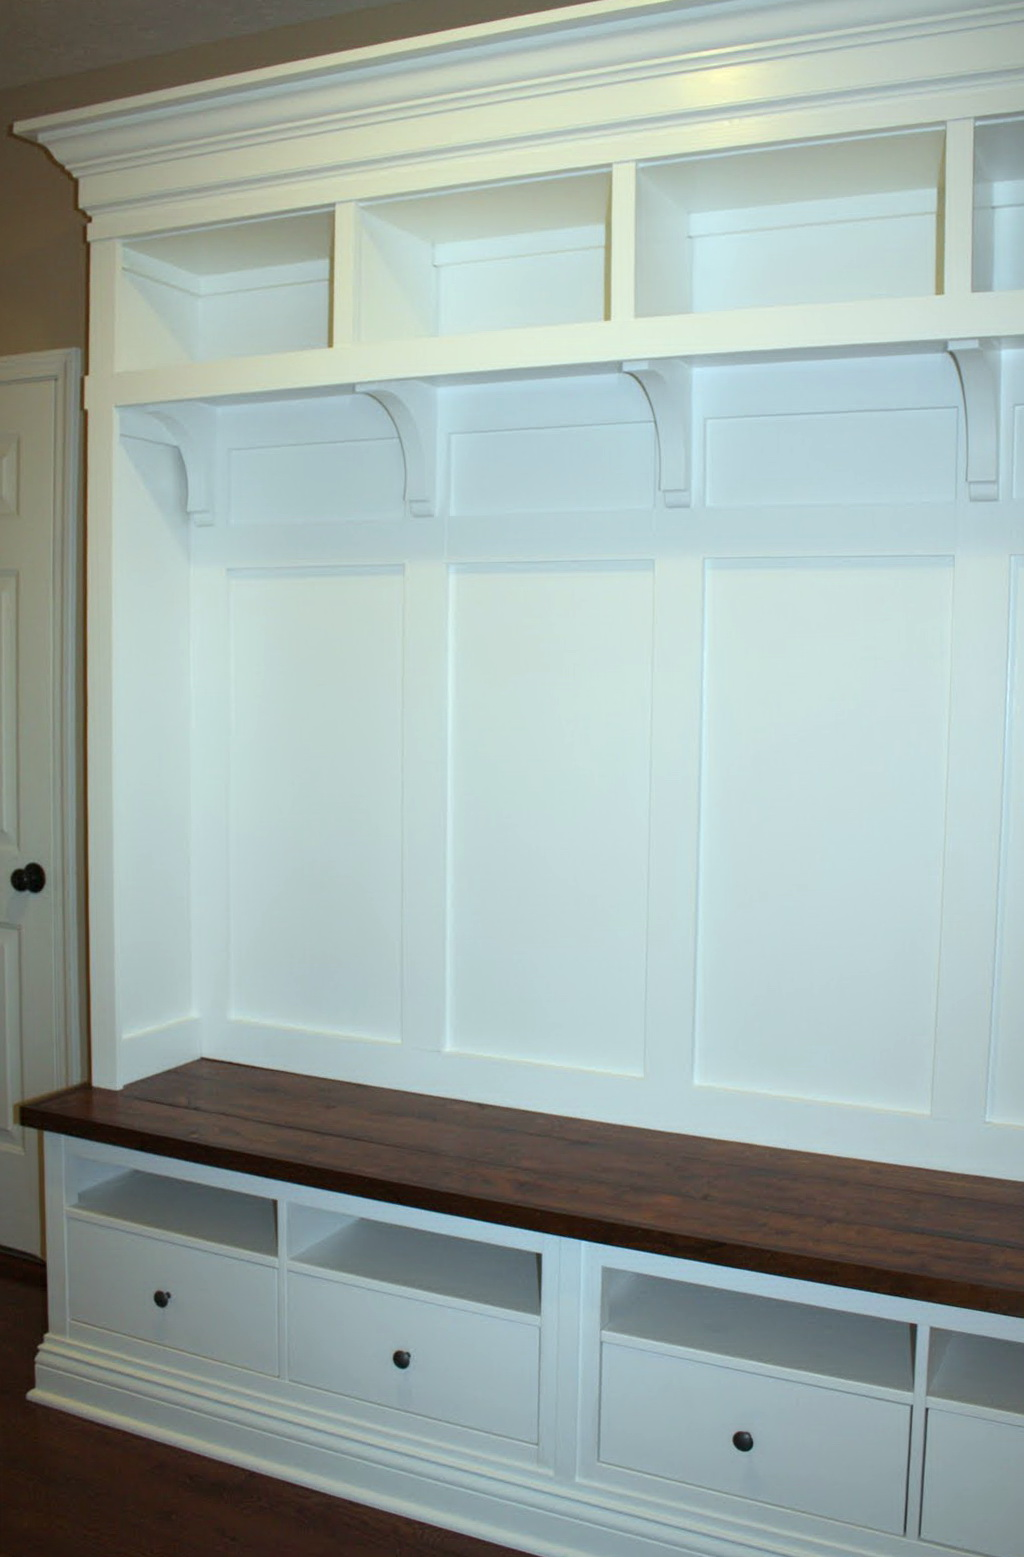 Mudroom Storage Bench Plans Home Design Ideas